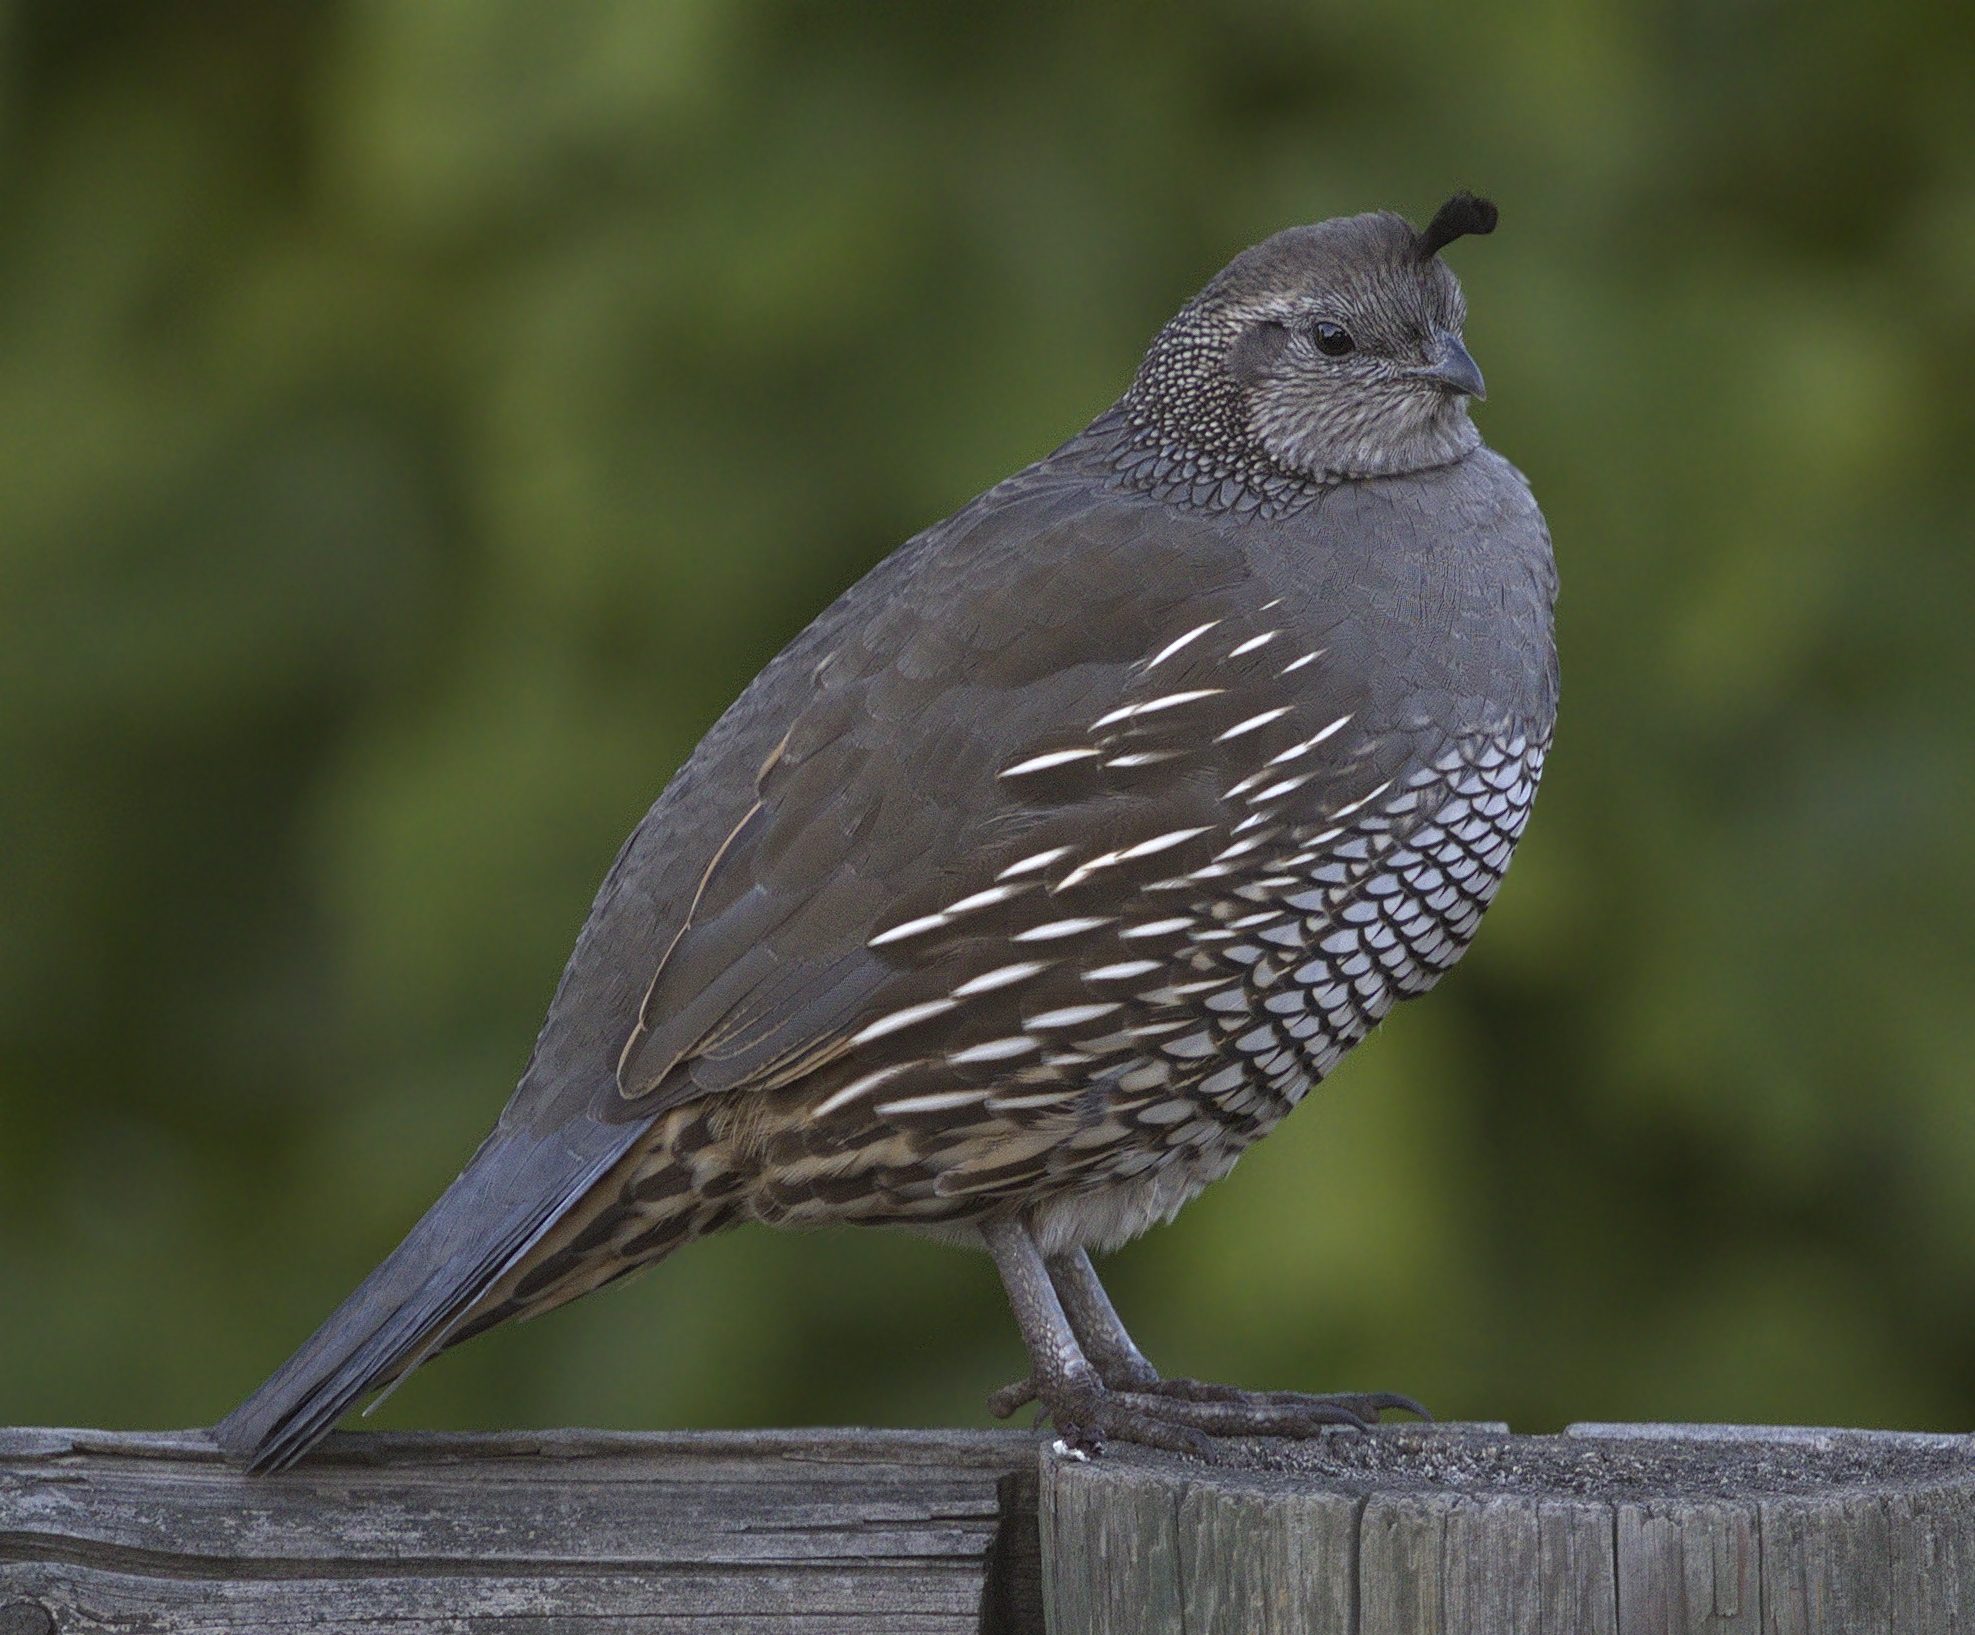 quail chat The quail hollow quarry is a producer of high quality silica glass sand quail hollow glass sand is a key component in the production of glass containers and glass fibers throughout california.